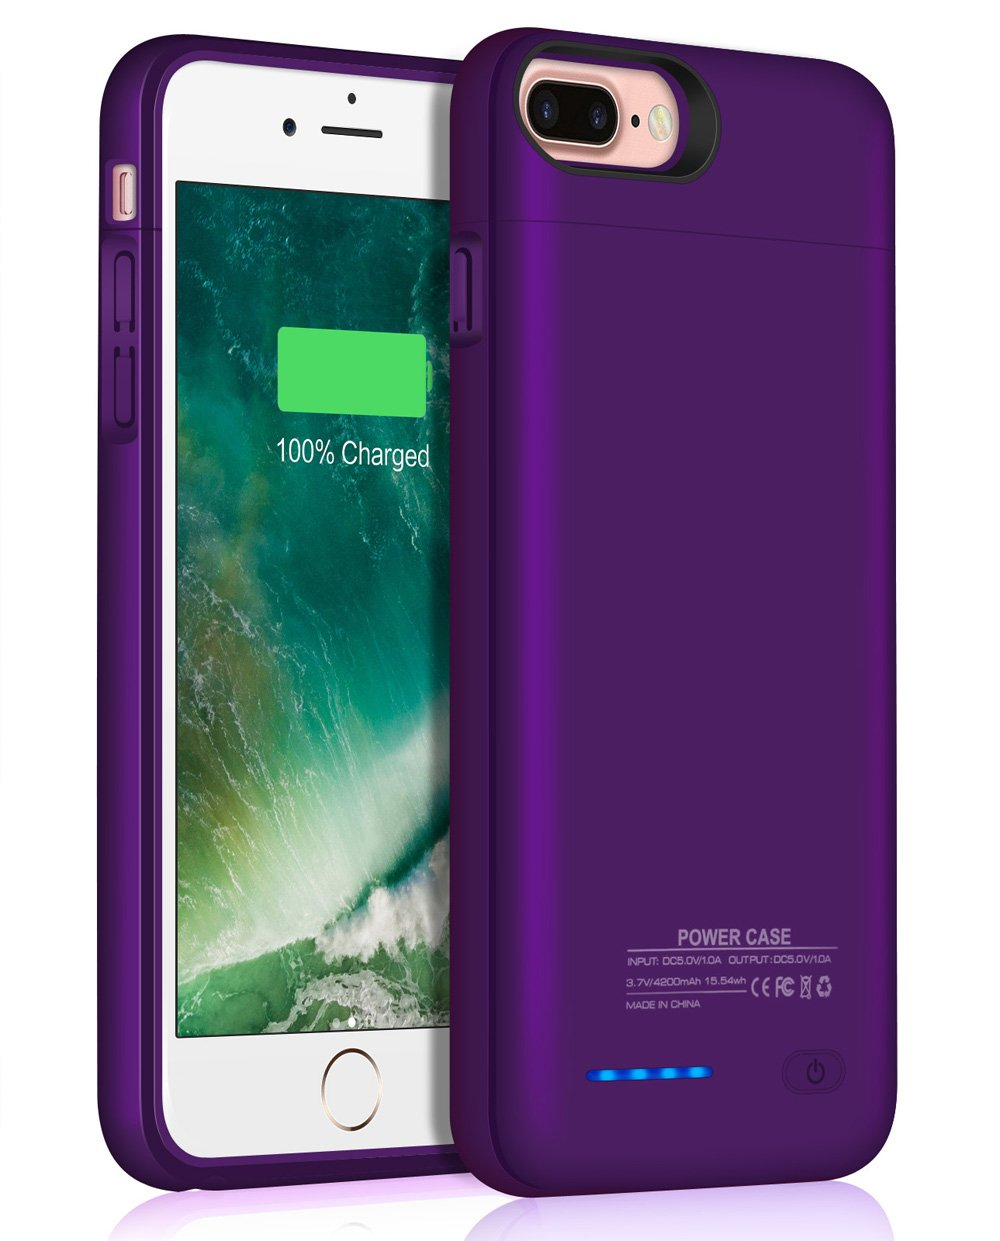 Iphone 8 Plus/7 Plus Battery Case/JUBOTY 4200mAh Slim Rechargable Protective Portable Charging Case for Iphone 8 Plus/7 Plus Juice Power Bank Battery Charger Case by JUBOTY (Image #1)